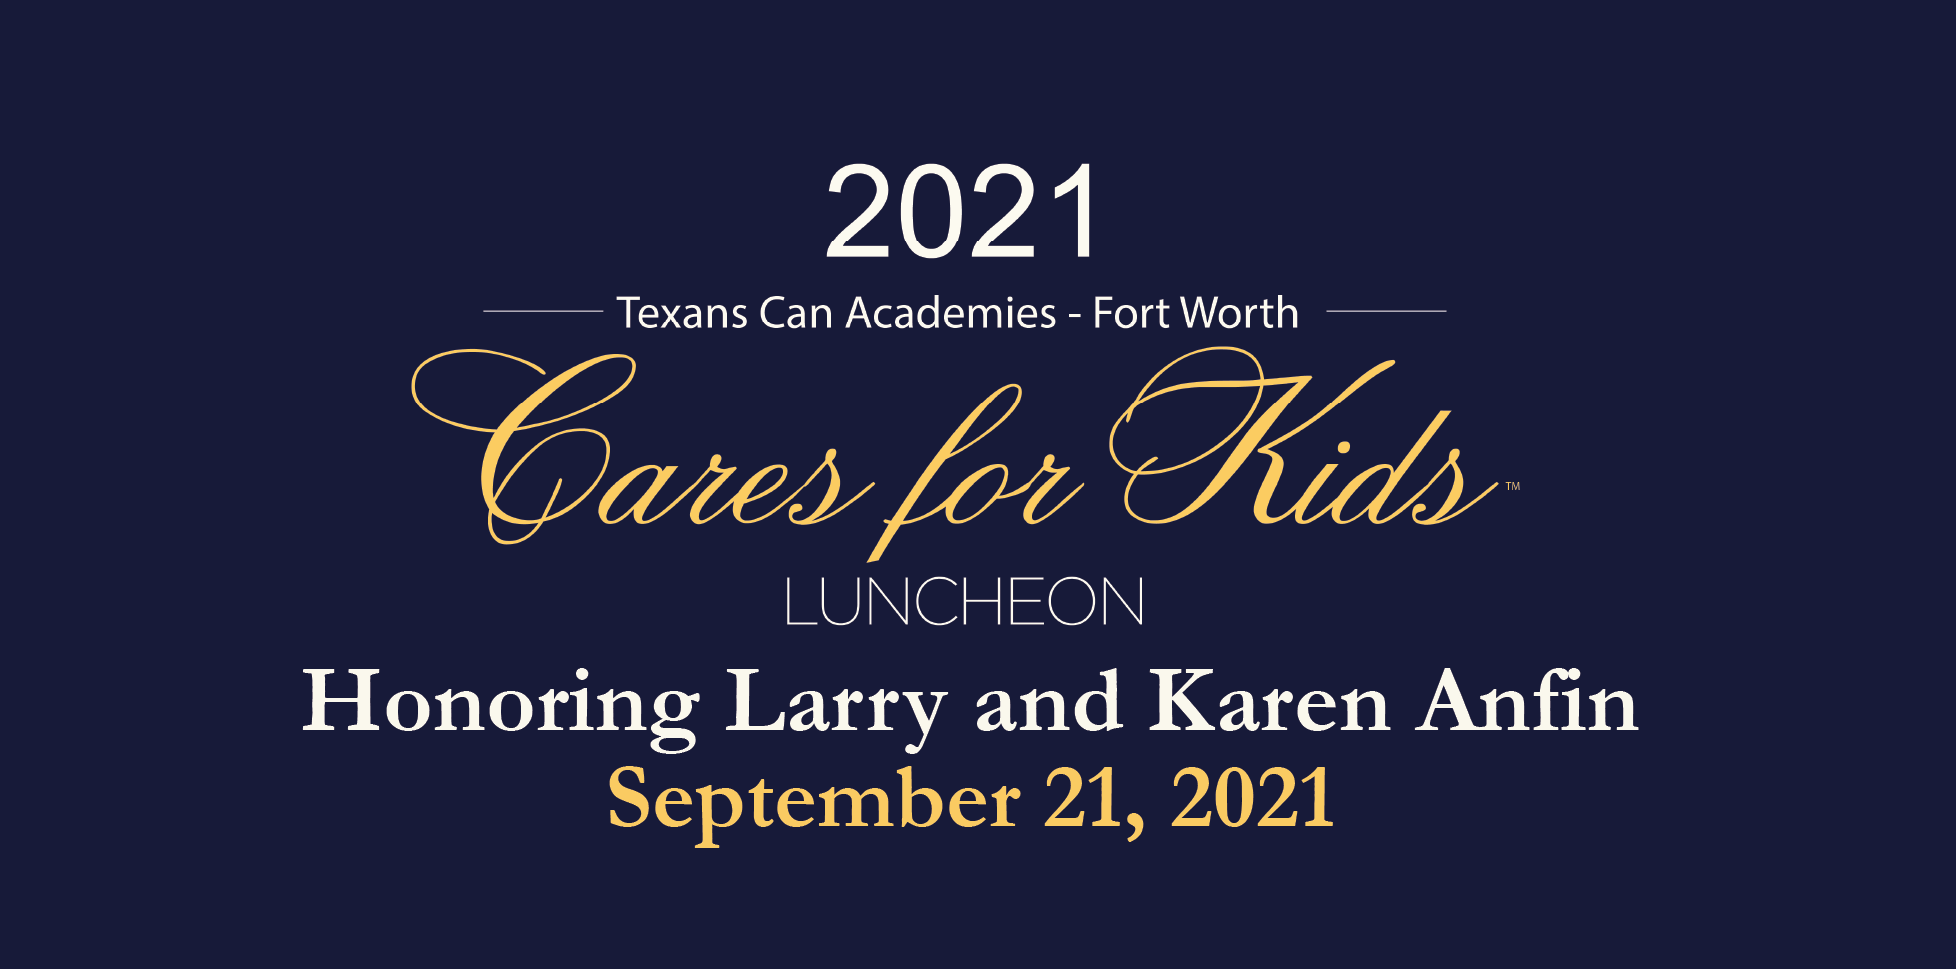 Texans Can Cares for Kids Fort Worth Honoring Larry & Karen Anfin